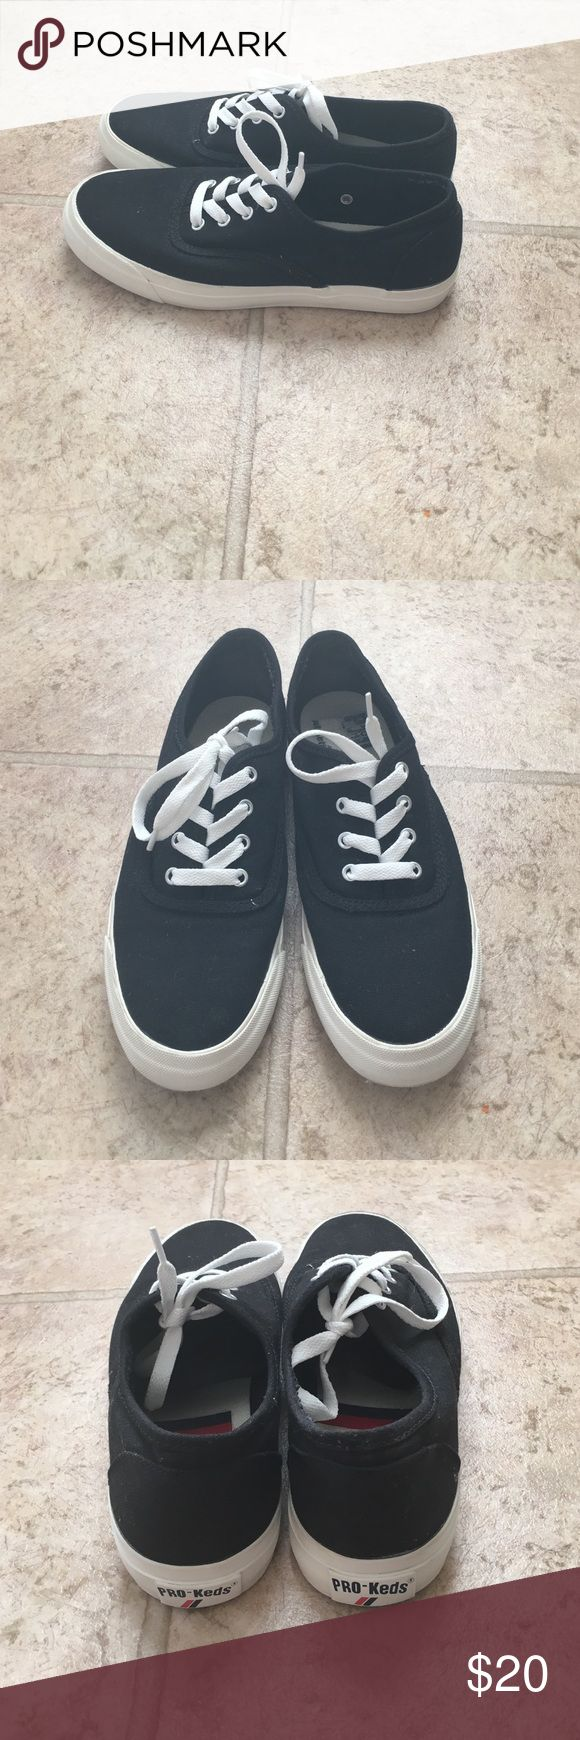 cheap pro-keds sneakers